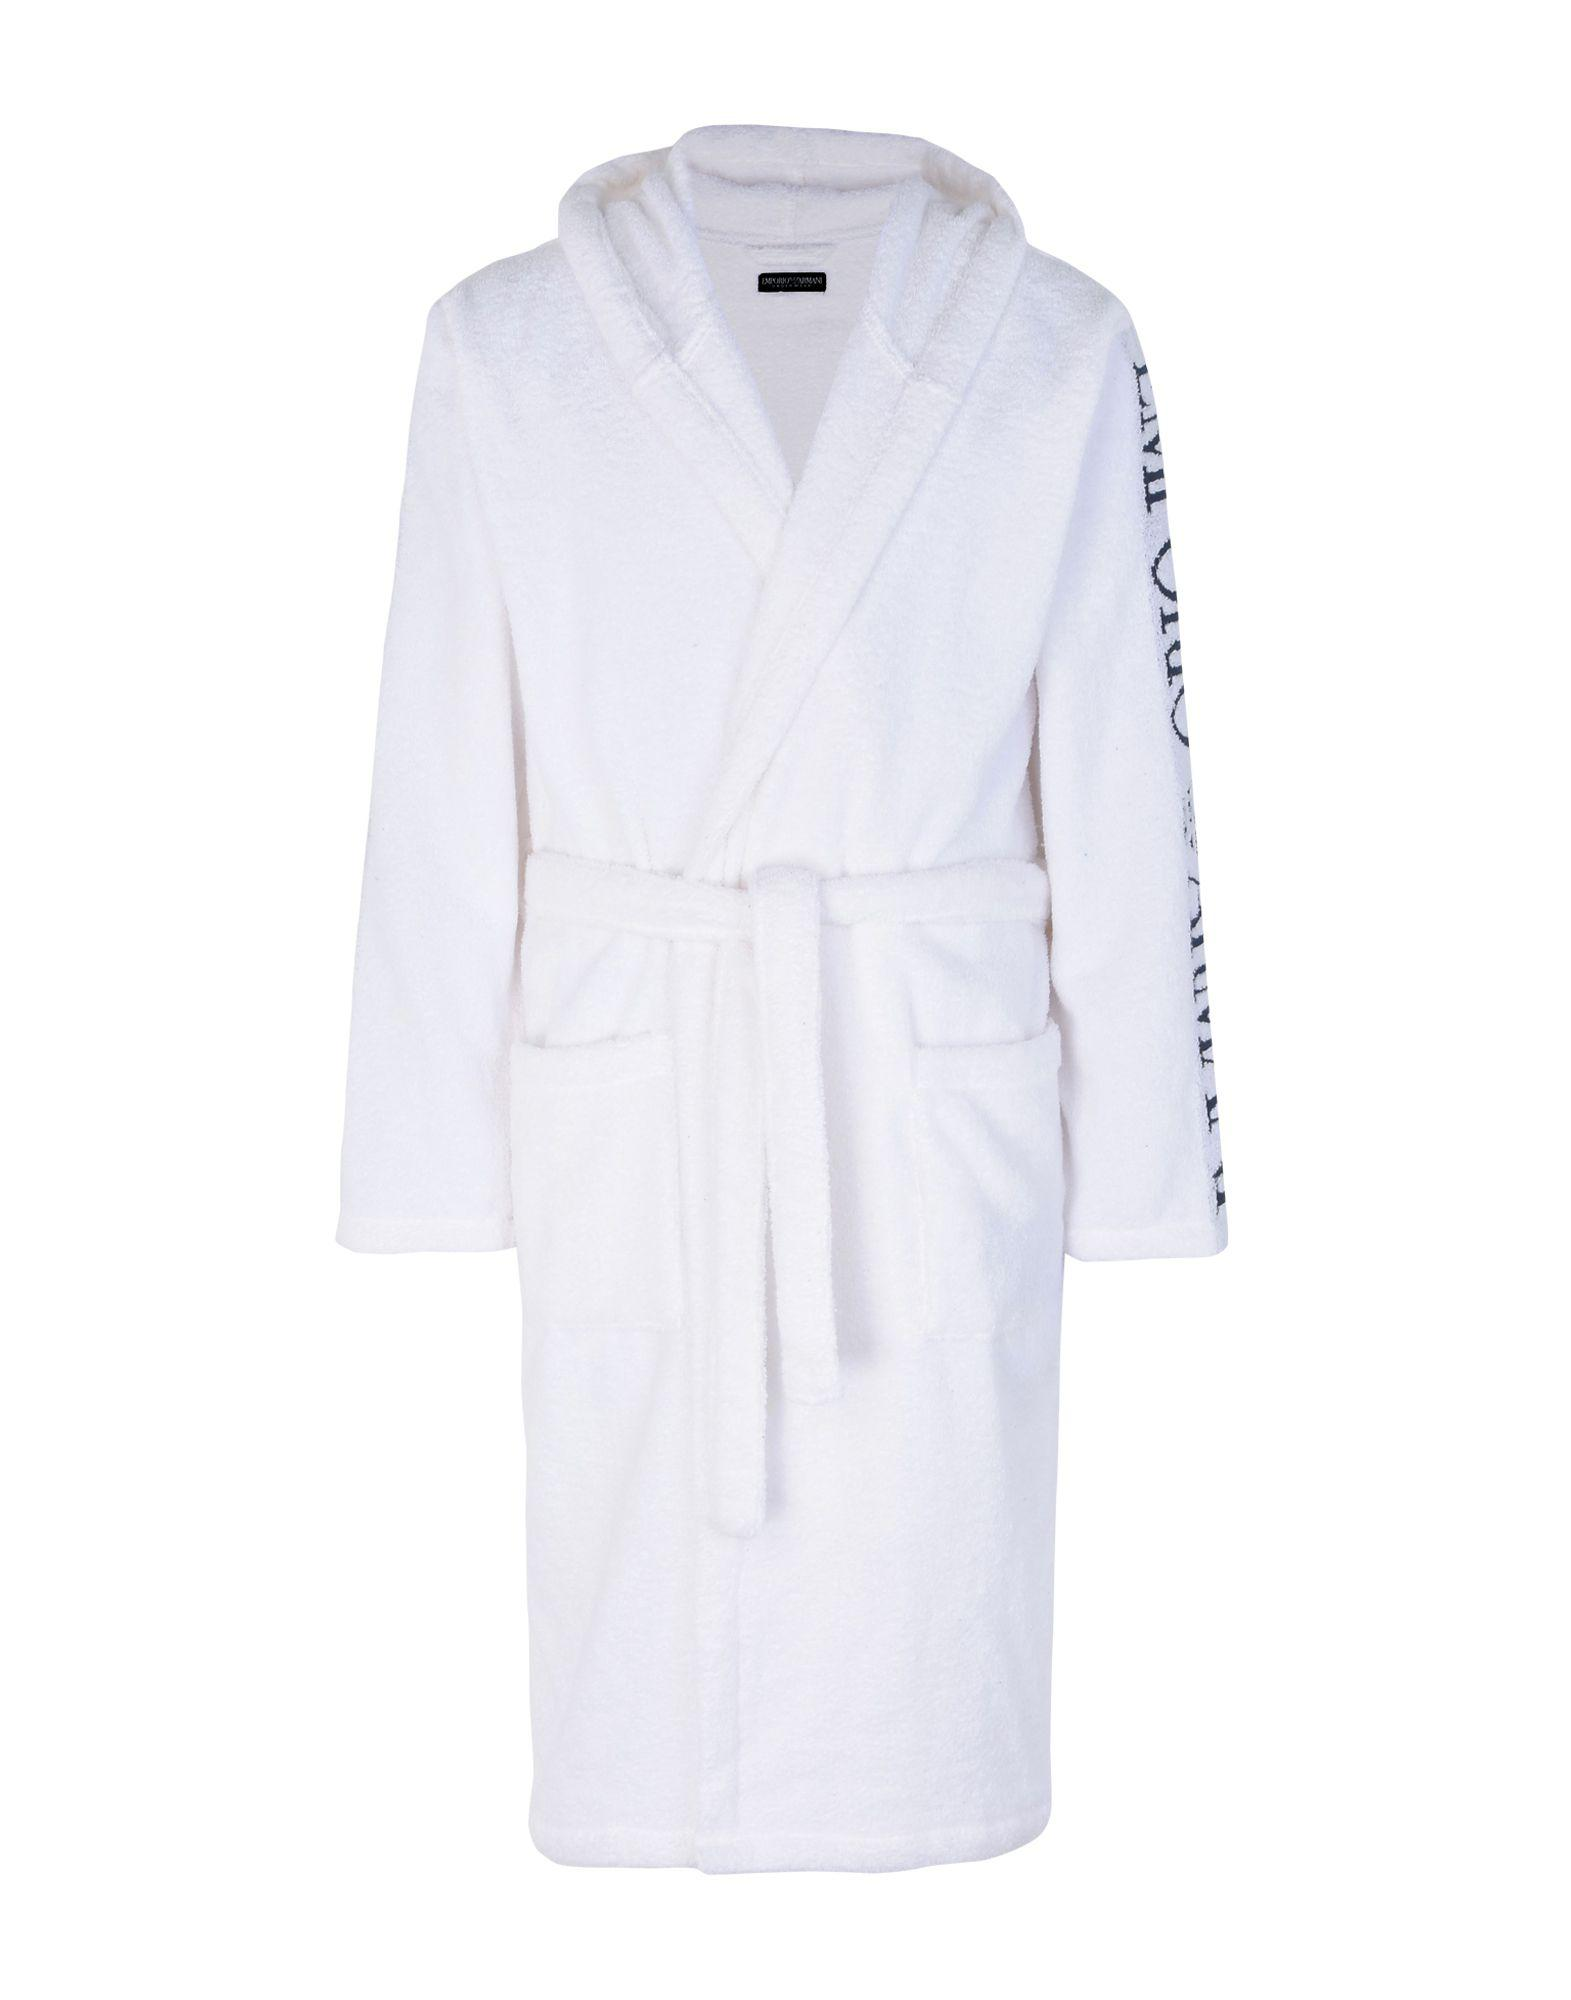 Emporio Armani Towelling Dressing Gown in White for Men - Lyst 5f0fdfed8